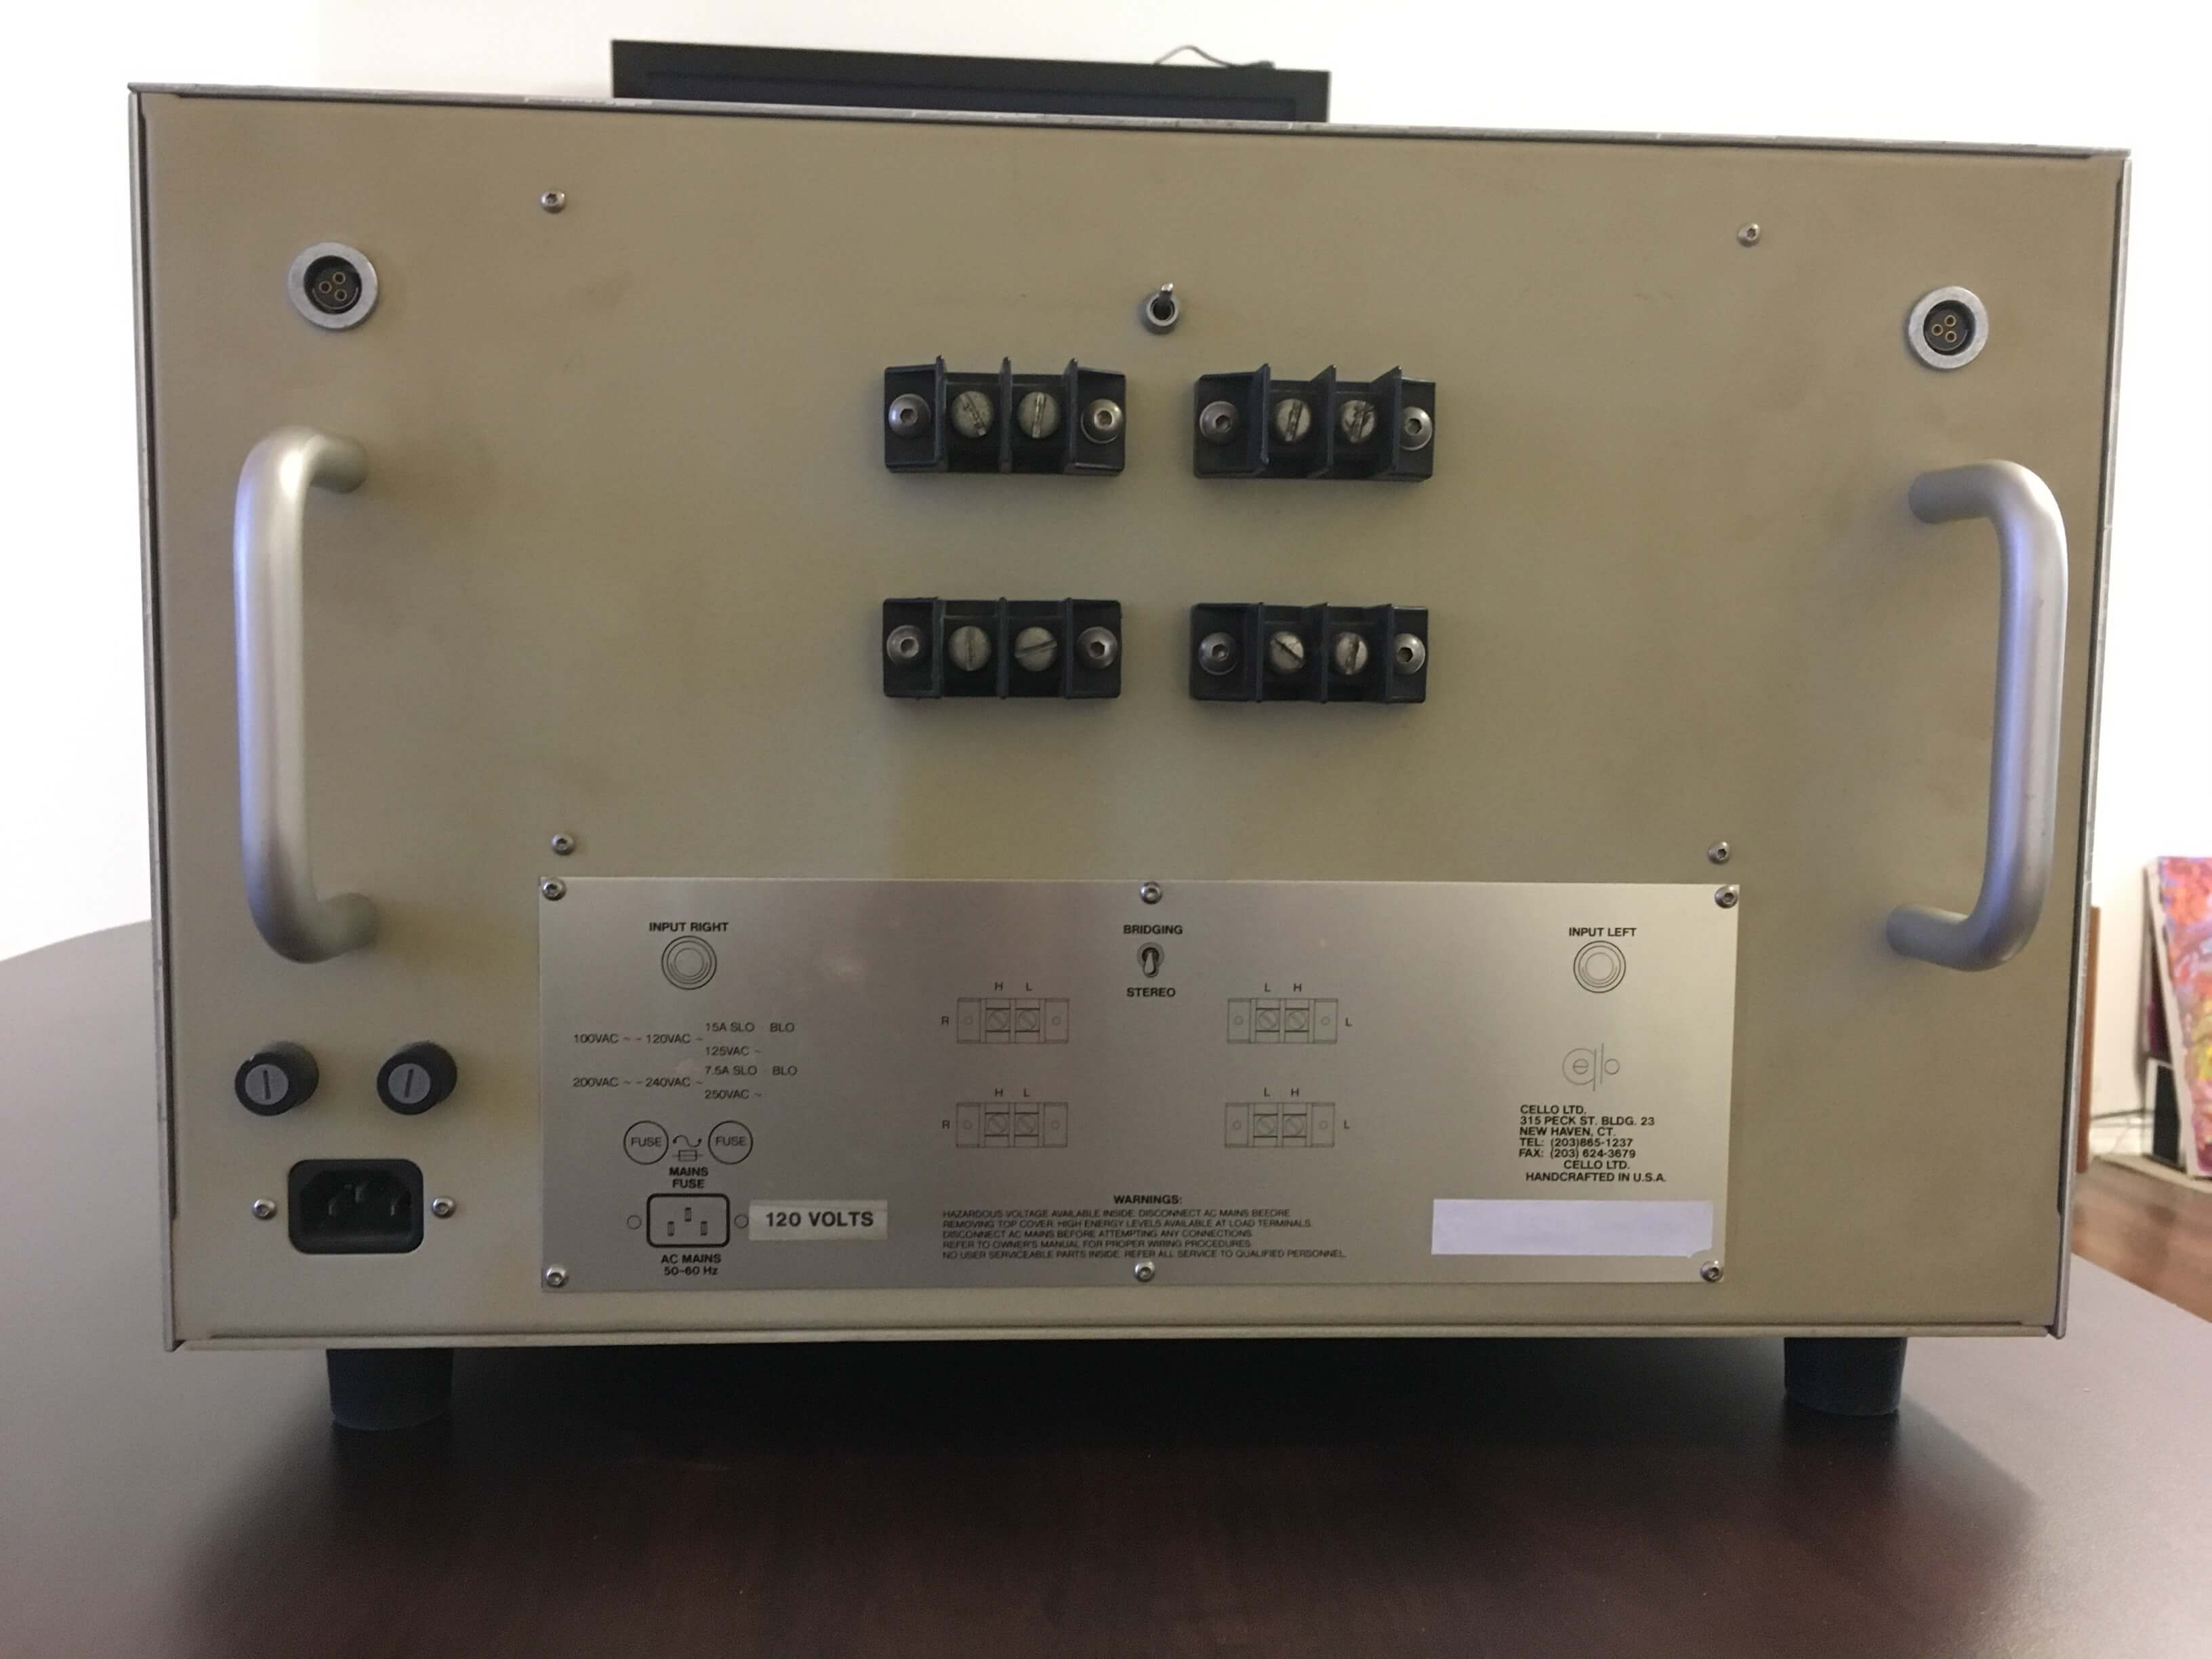 Cello Duet 350 amplifier